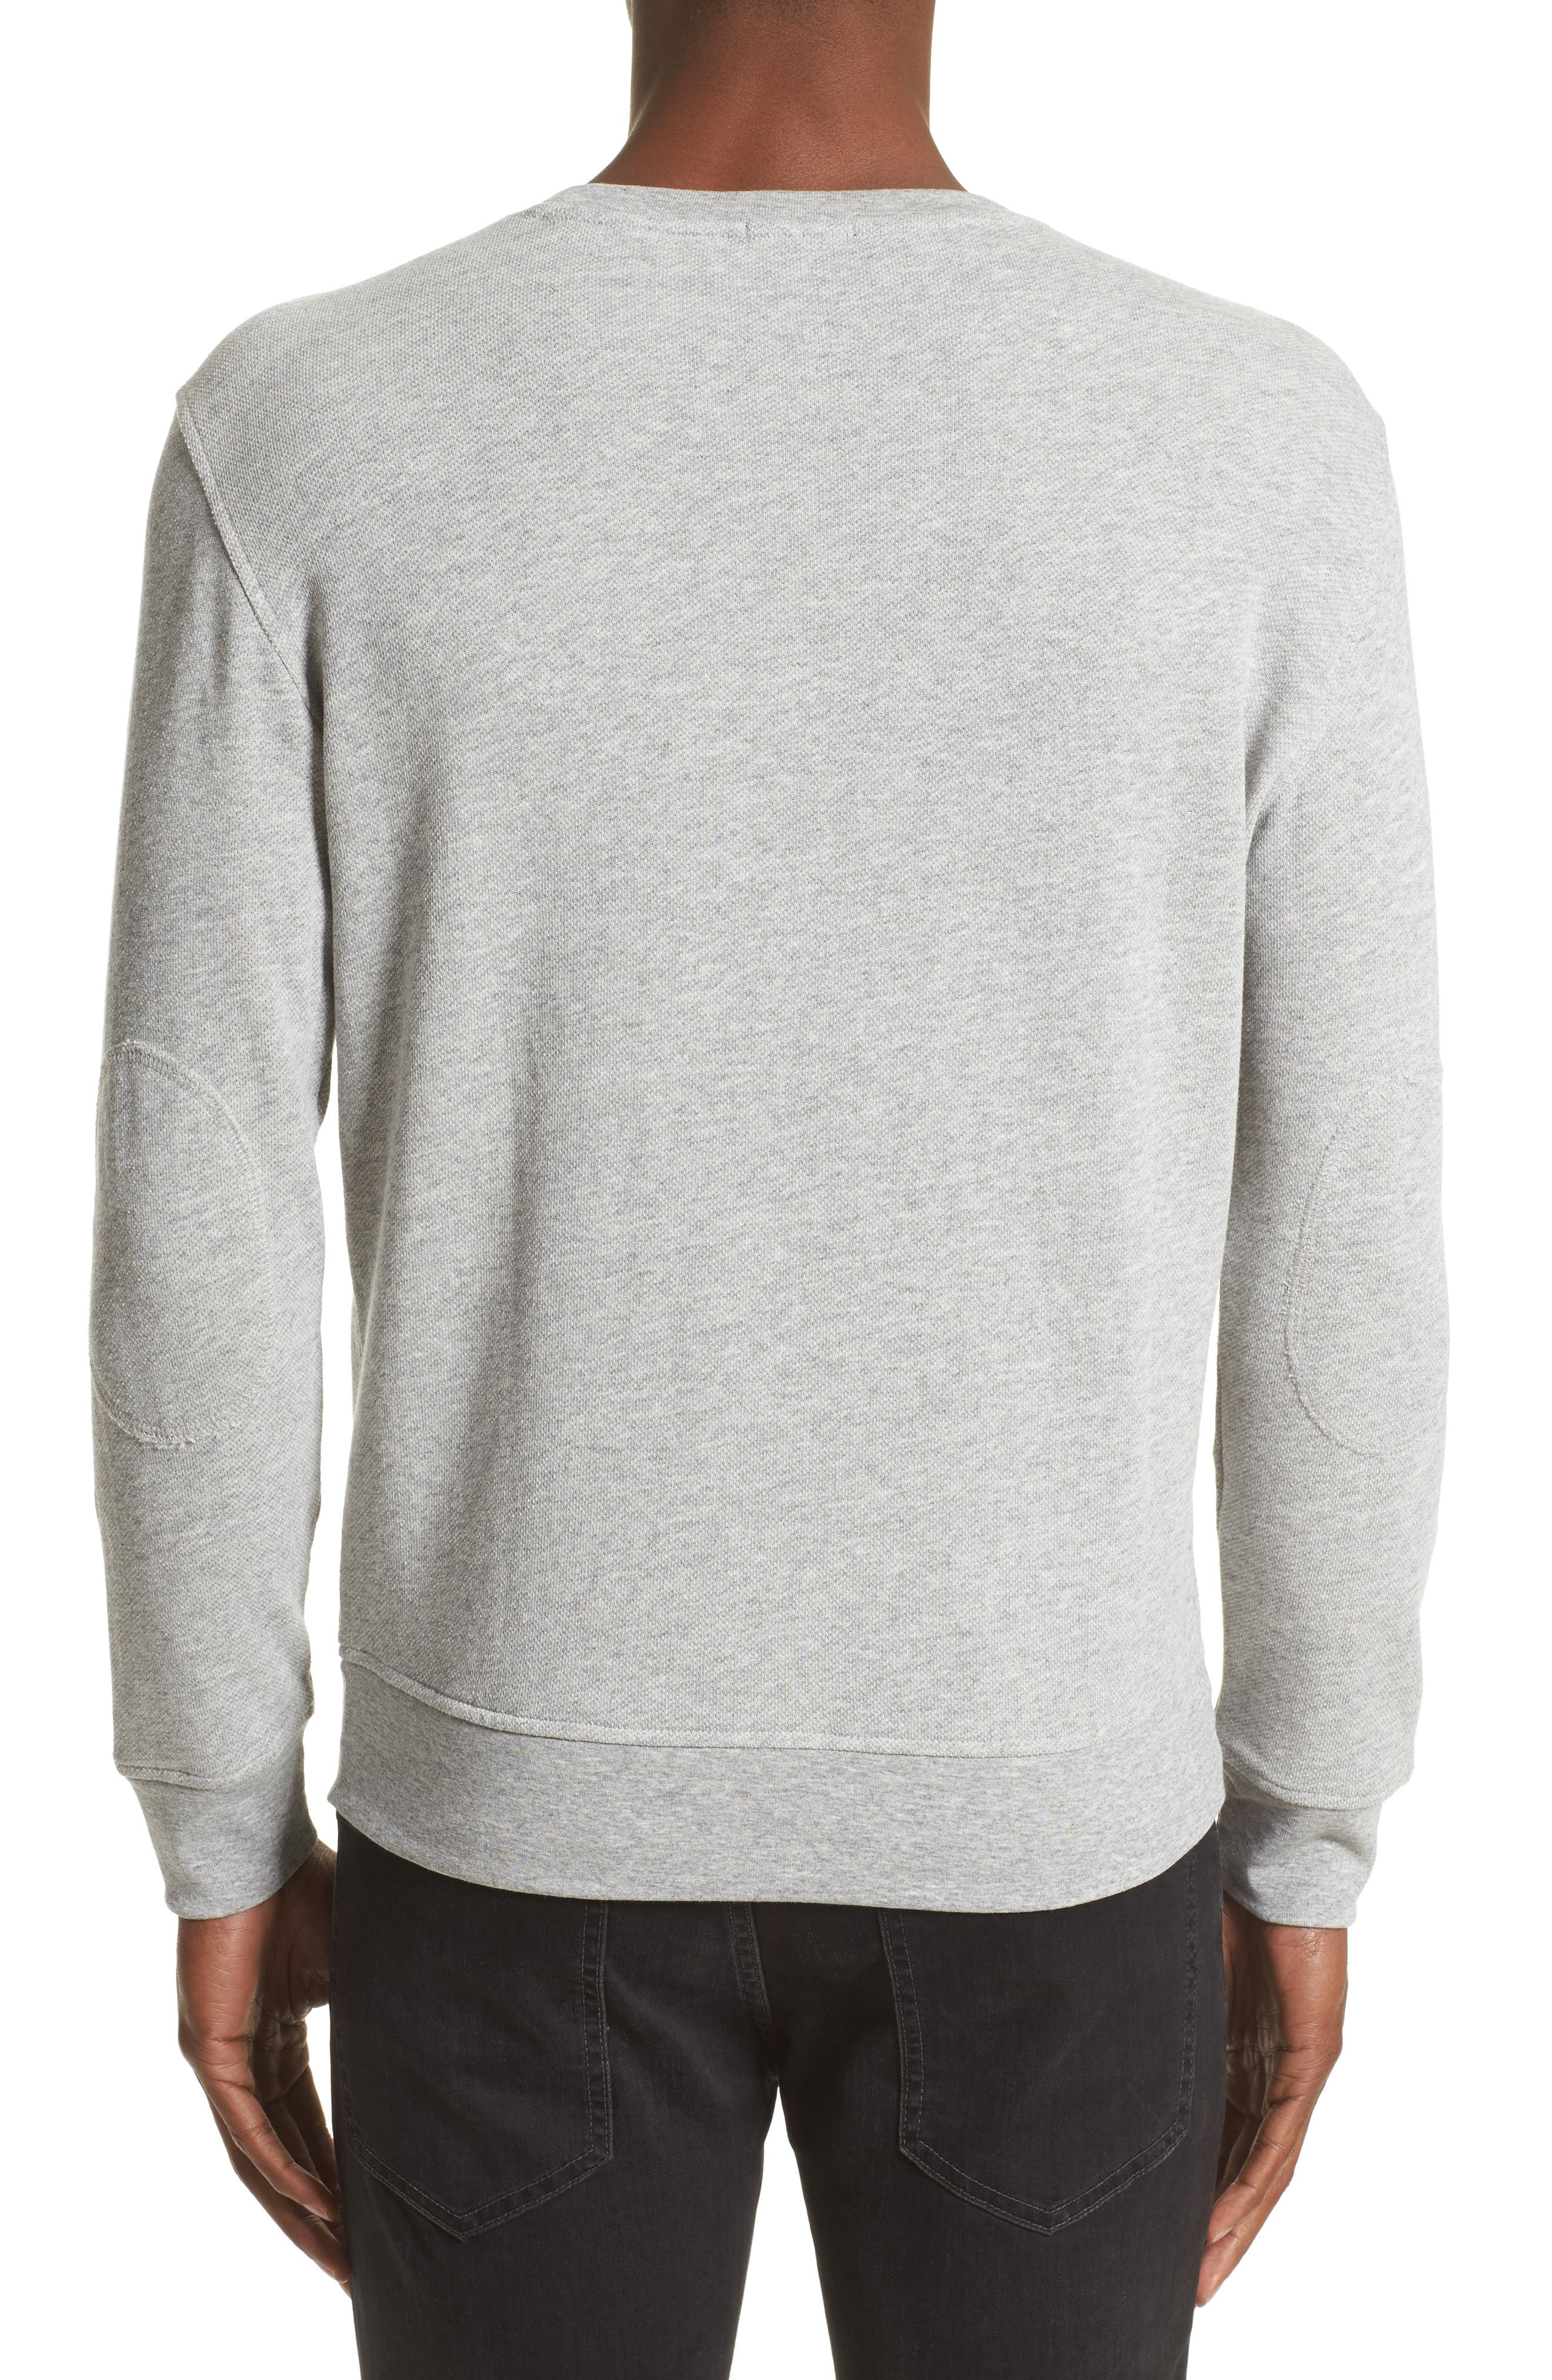 French Terry Sweatshirt,                             Alternate thumbnail 2, color,                             050